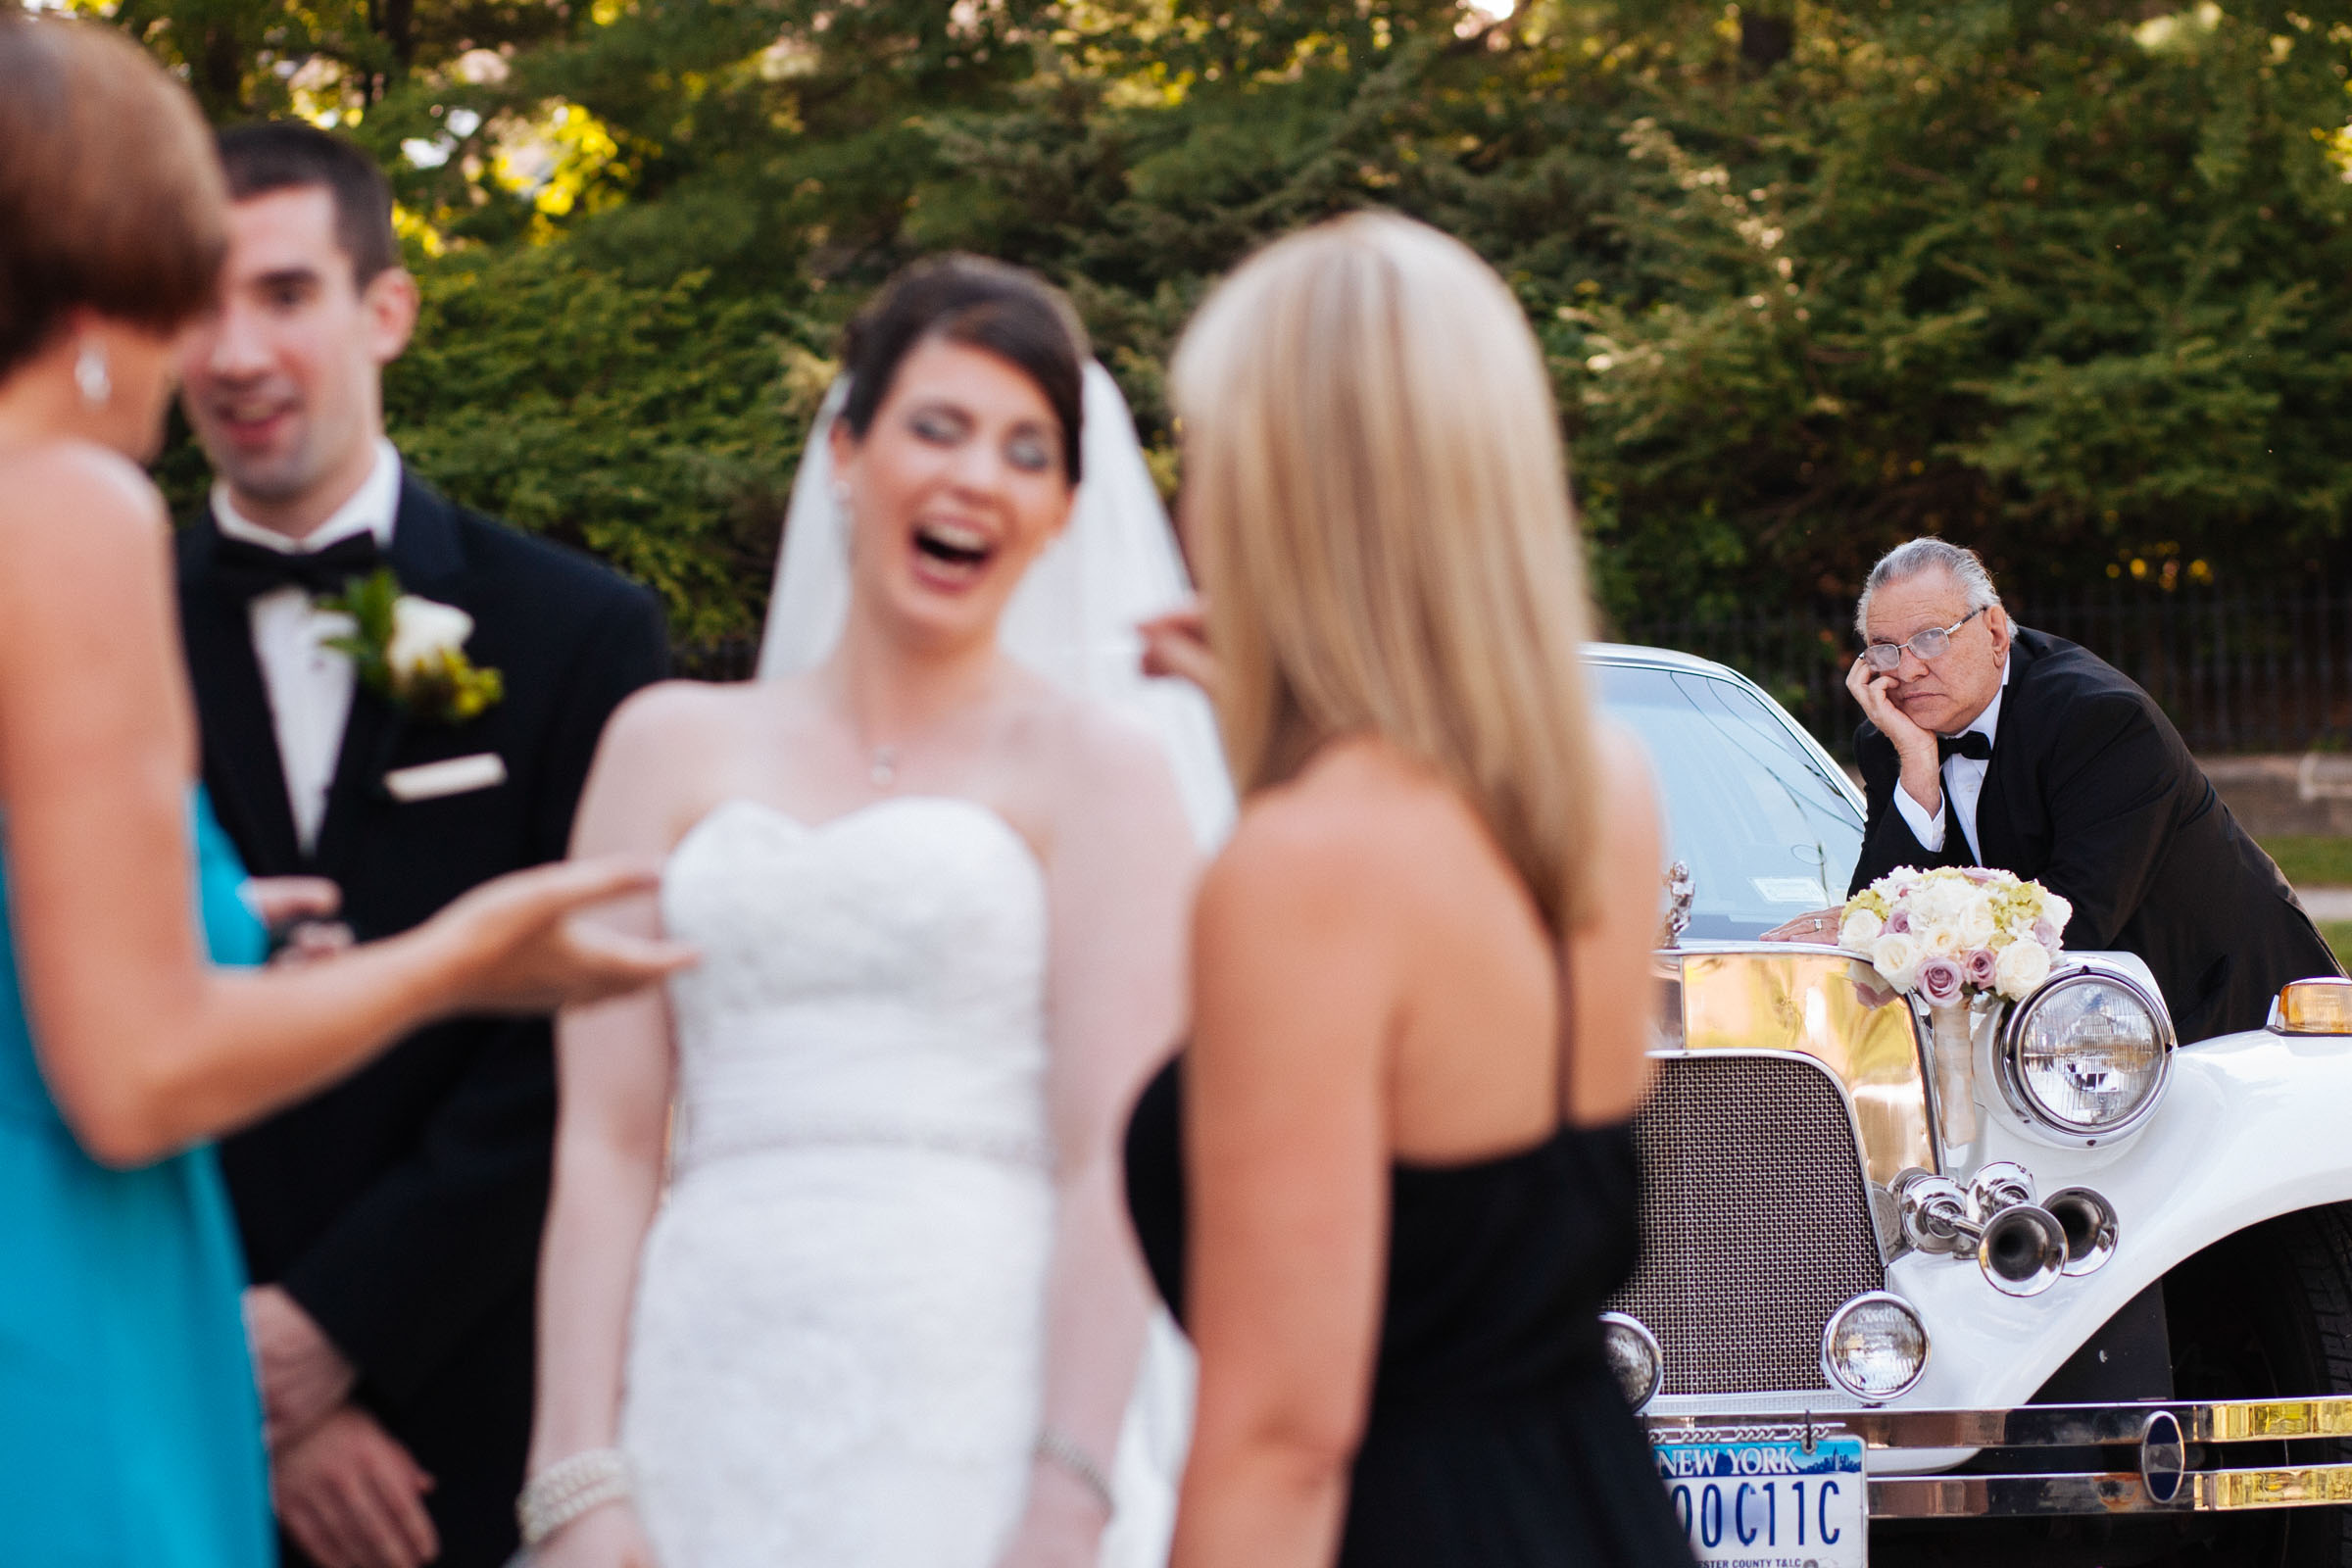 Glum father watches bride and company - photo by MD photo films